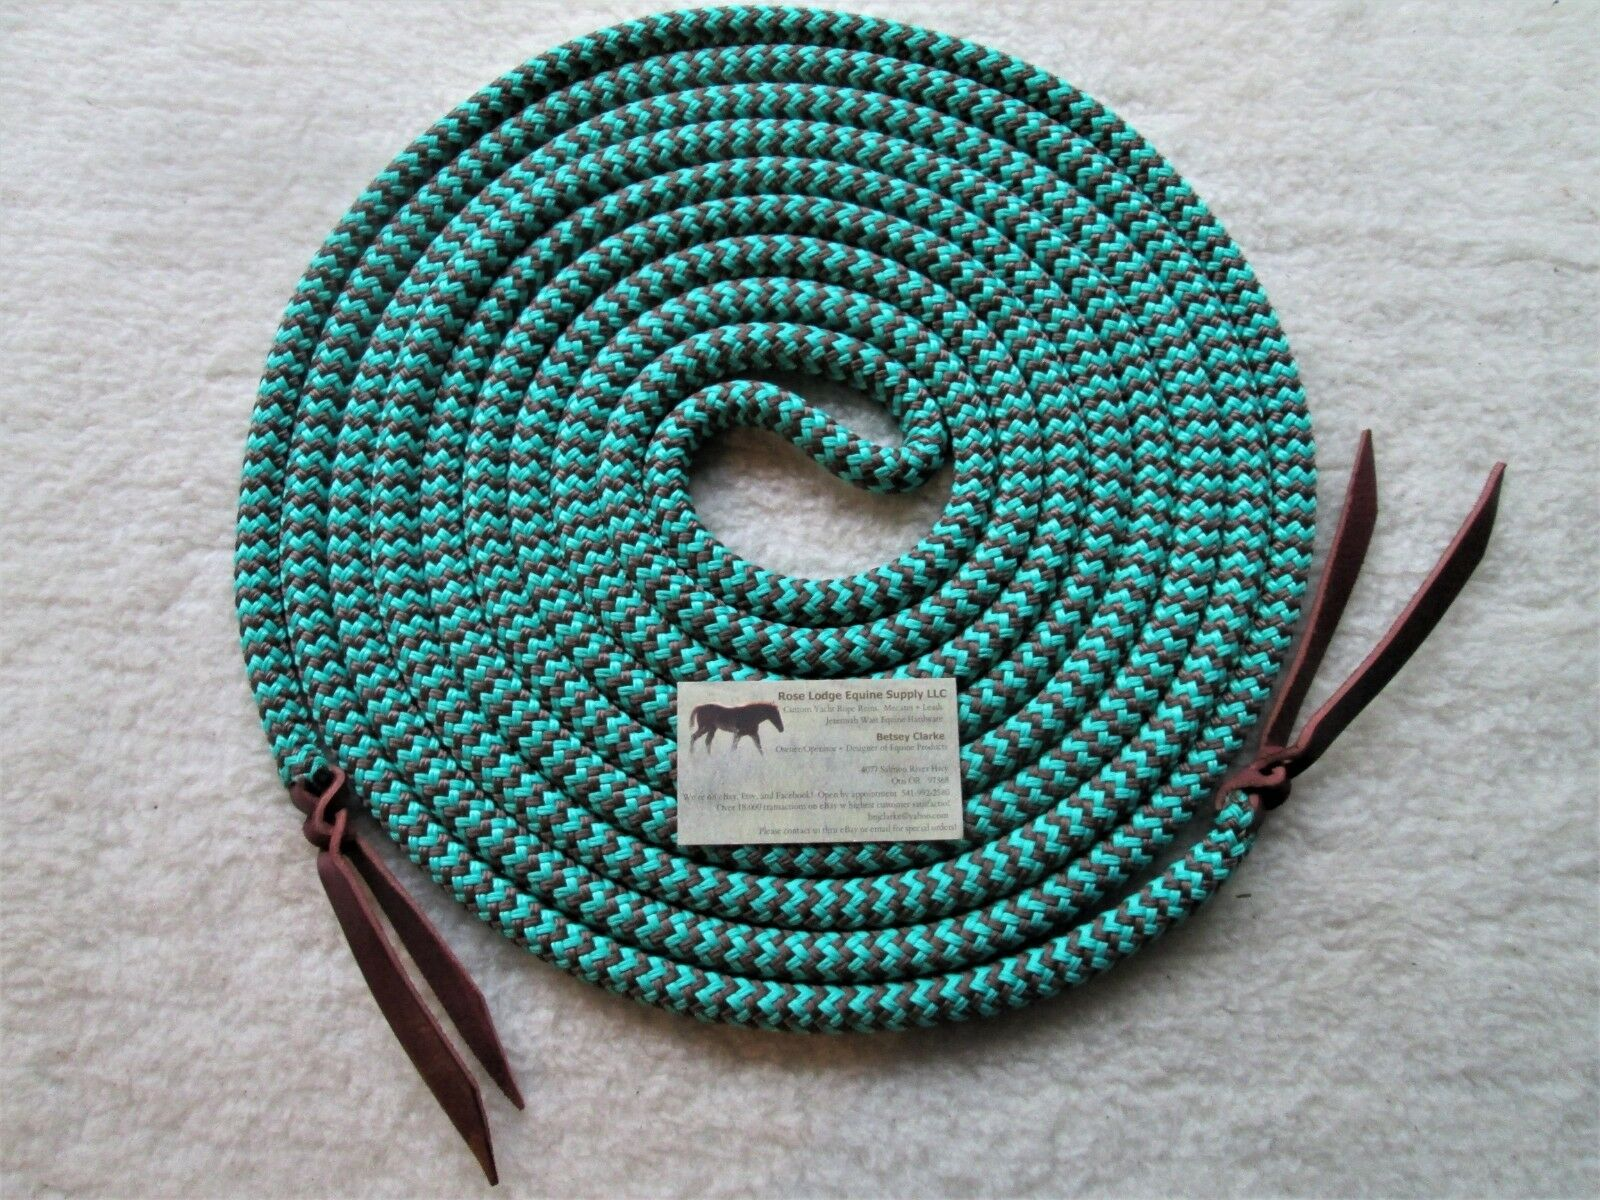 22' SNAKESKIN Turquoise    BRN) Yacht Rope Mecate Reins 4 Slobber Straps or Bosal  top brand